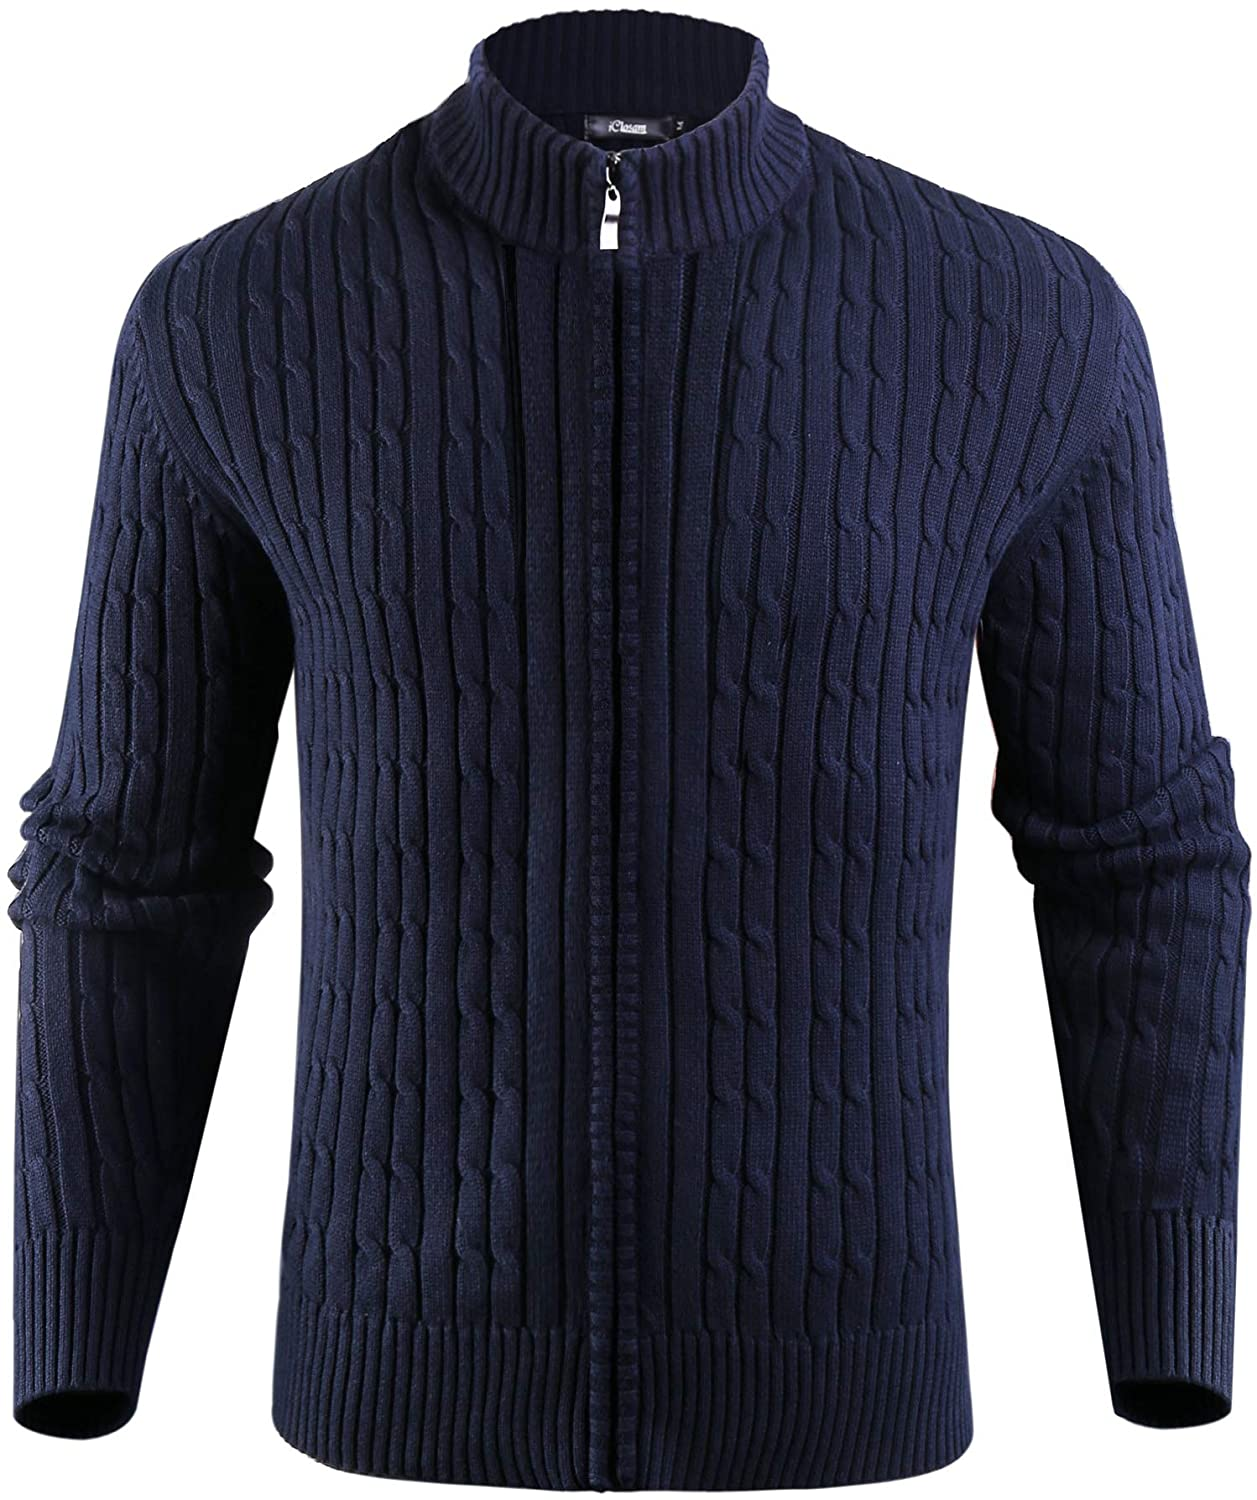 iClosam Mens Long Sleeve Full-Zip Stand Collar Cable Knitted Cardigan Sweater